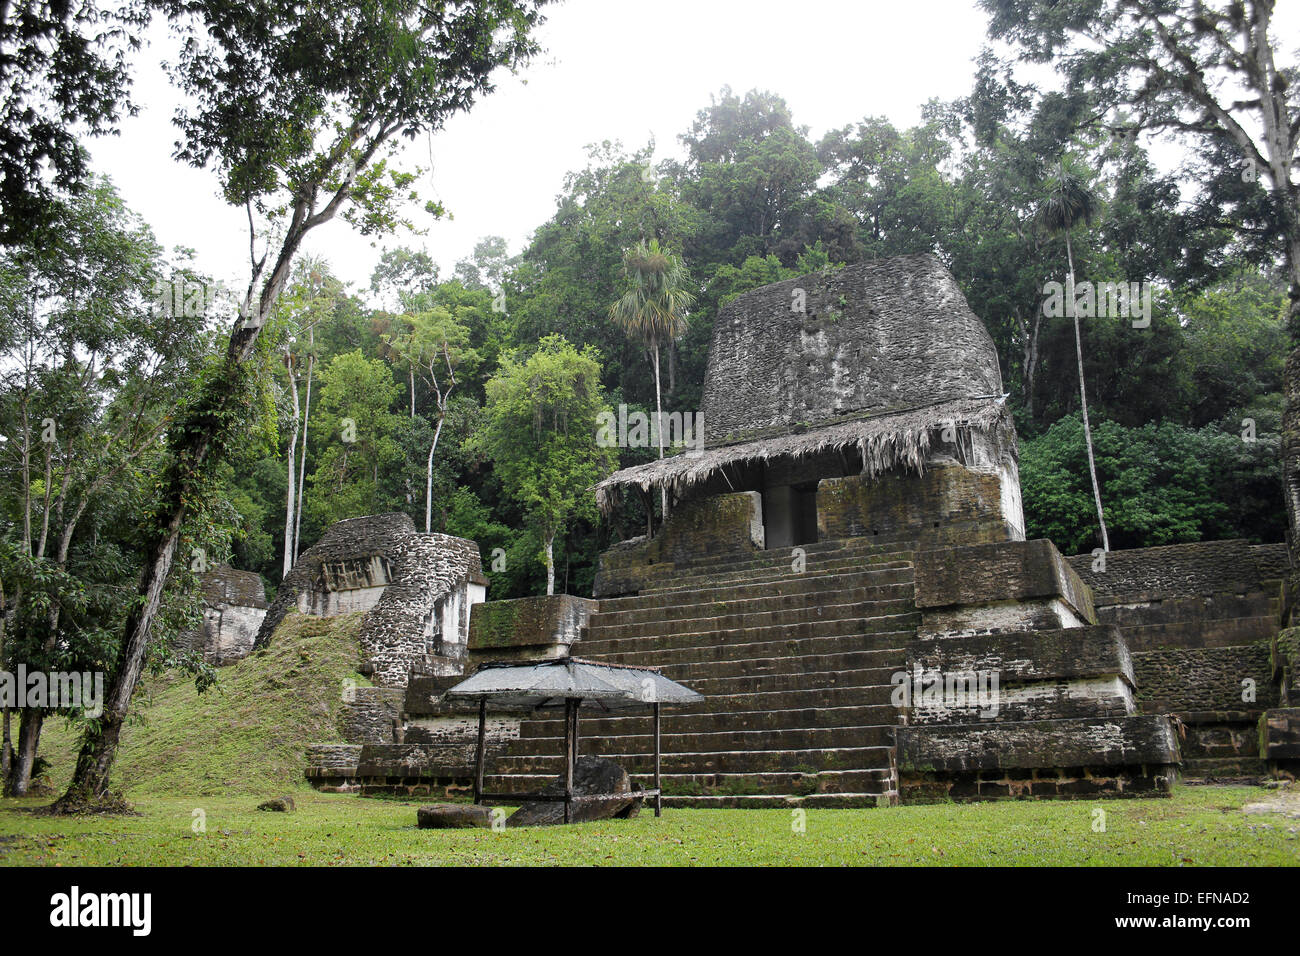 Mayan Temple In Tikal National Park - Stock Image